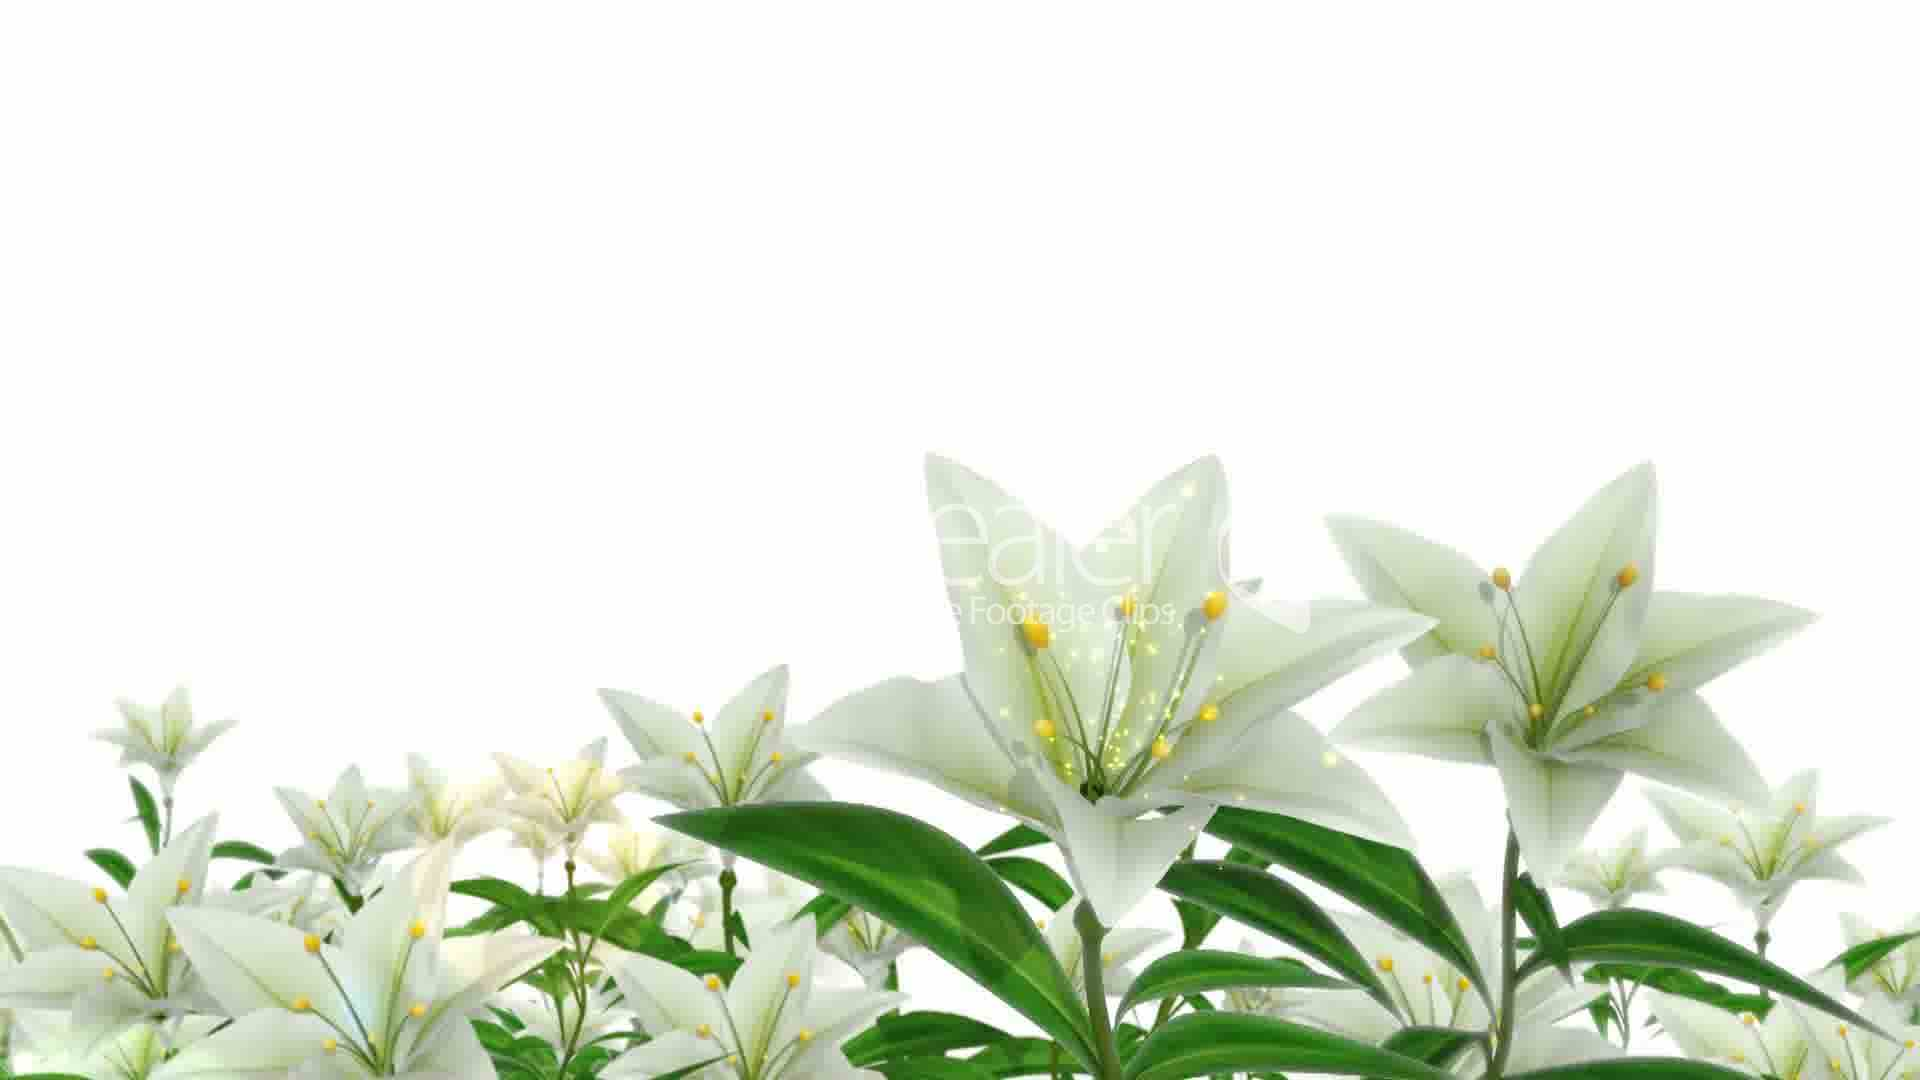 <b>Easter Lilies Wallpaper</b> - WallpaperSafari